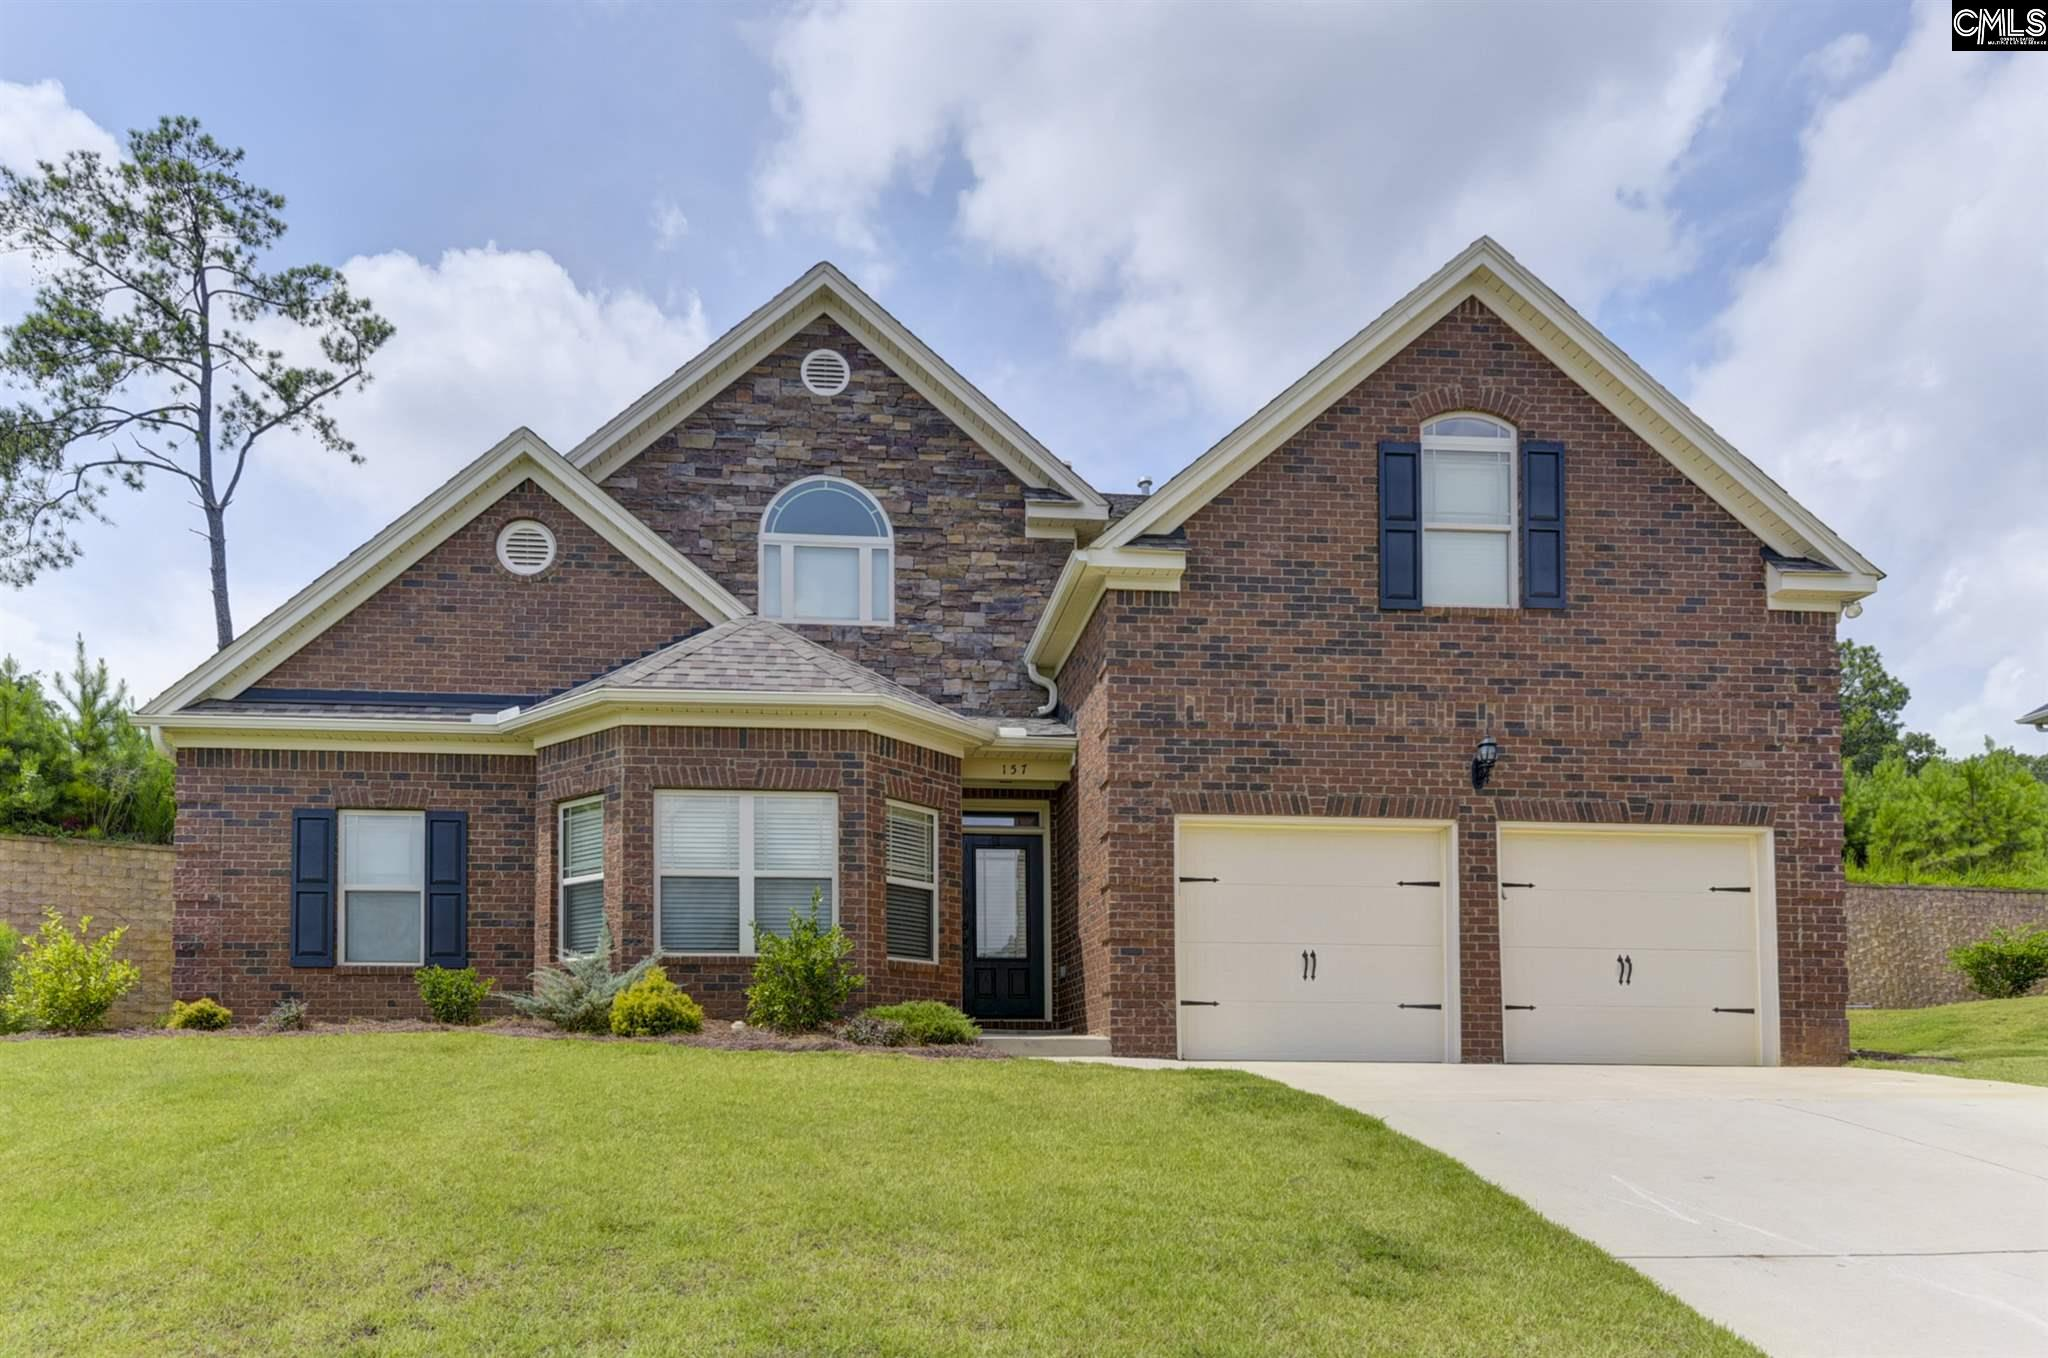 157 Hope Springs Lexington, SC 29072